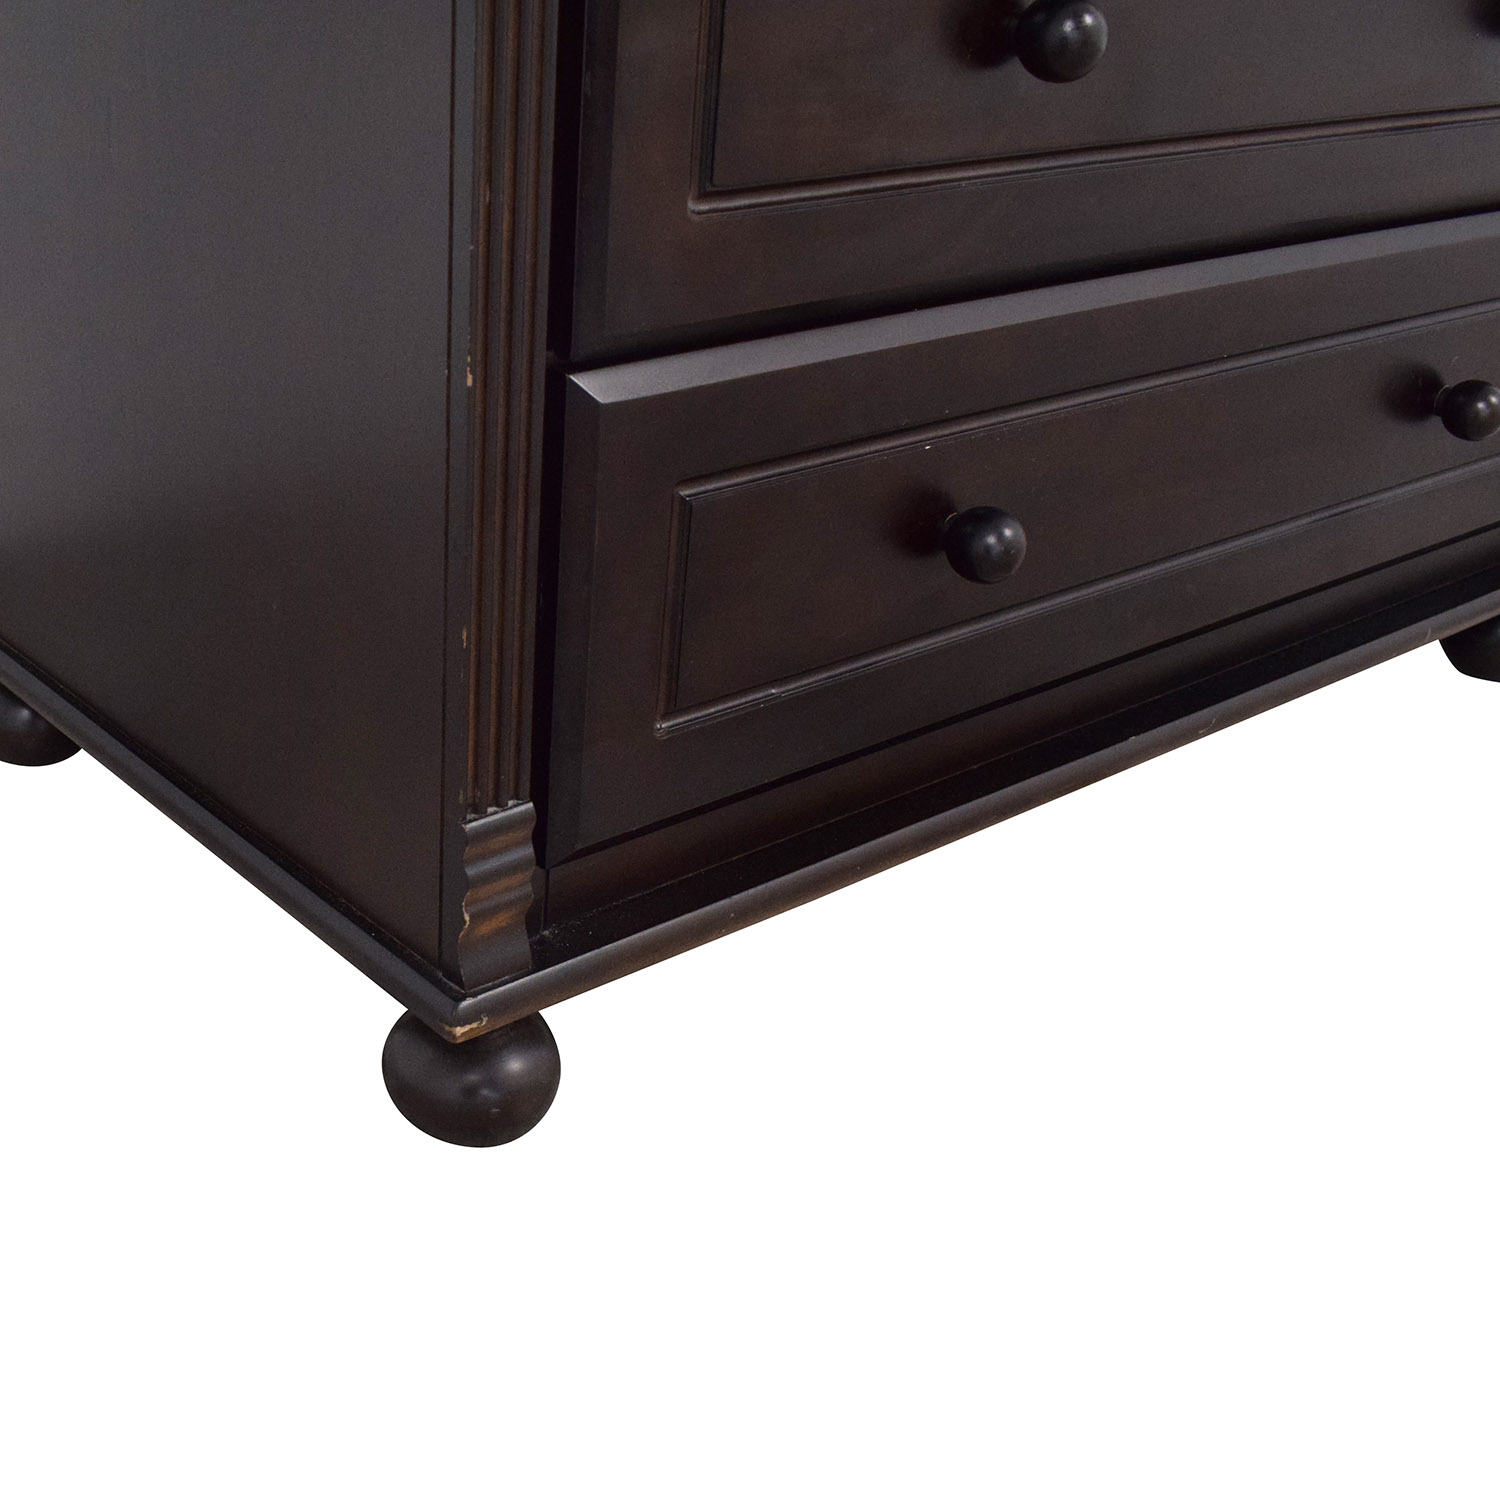 Bellini Baby Bellini Jessica Dresser with Changing Table nyc